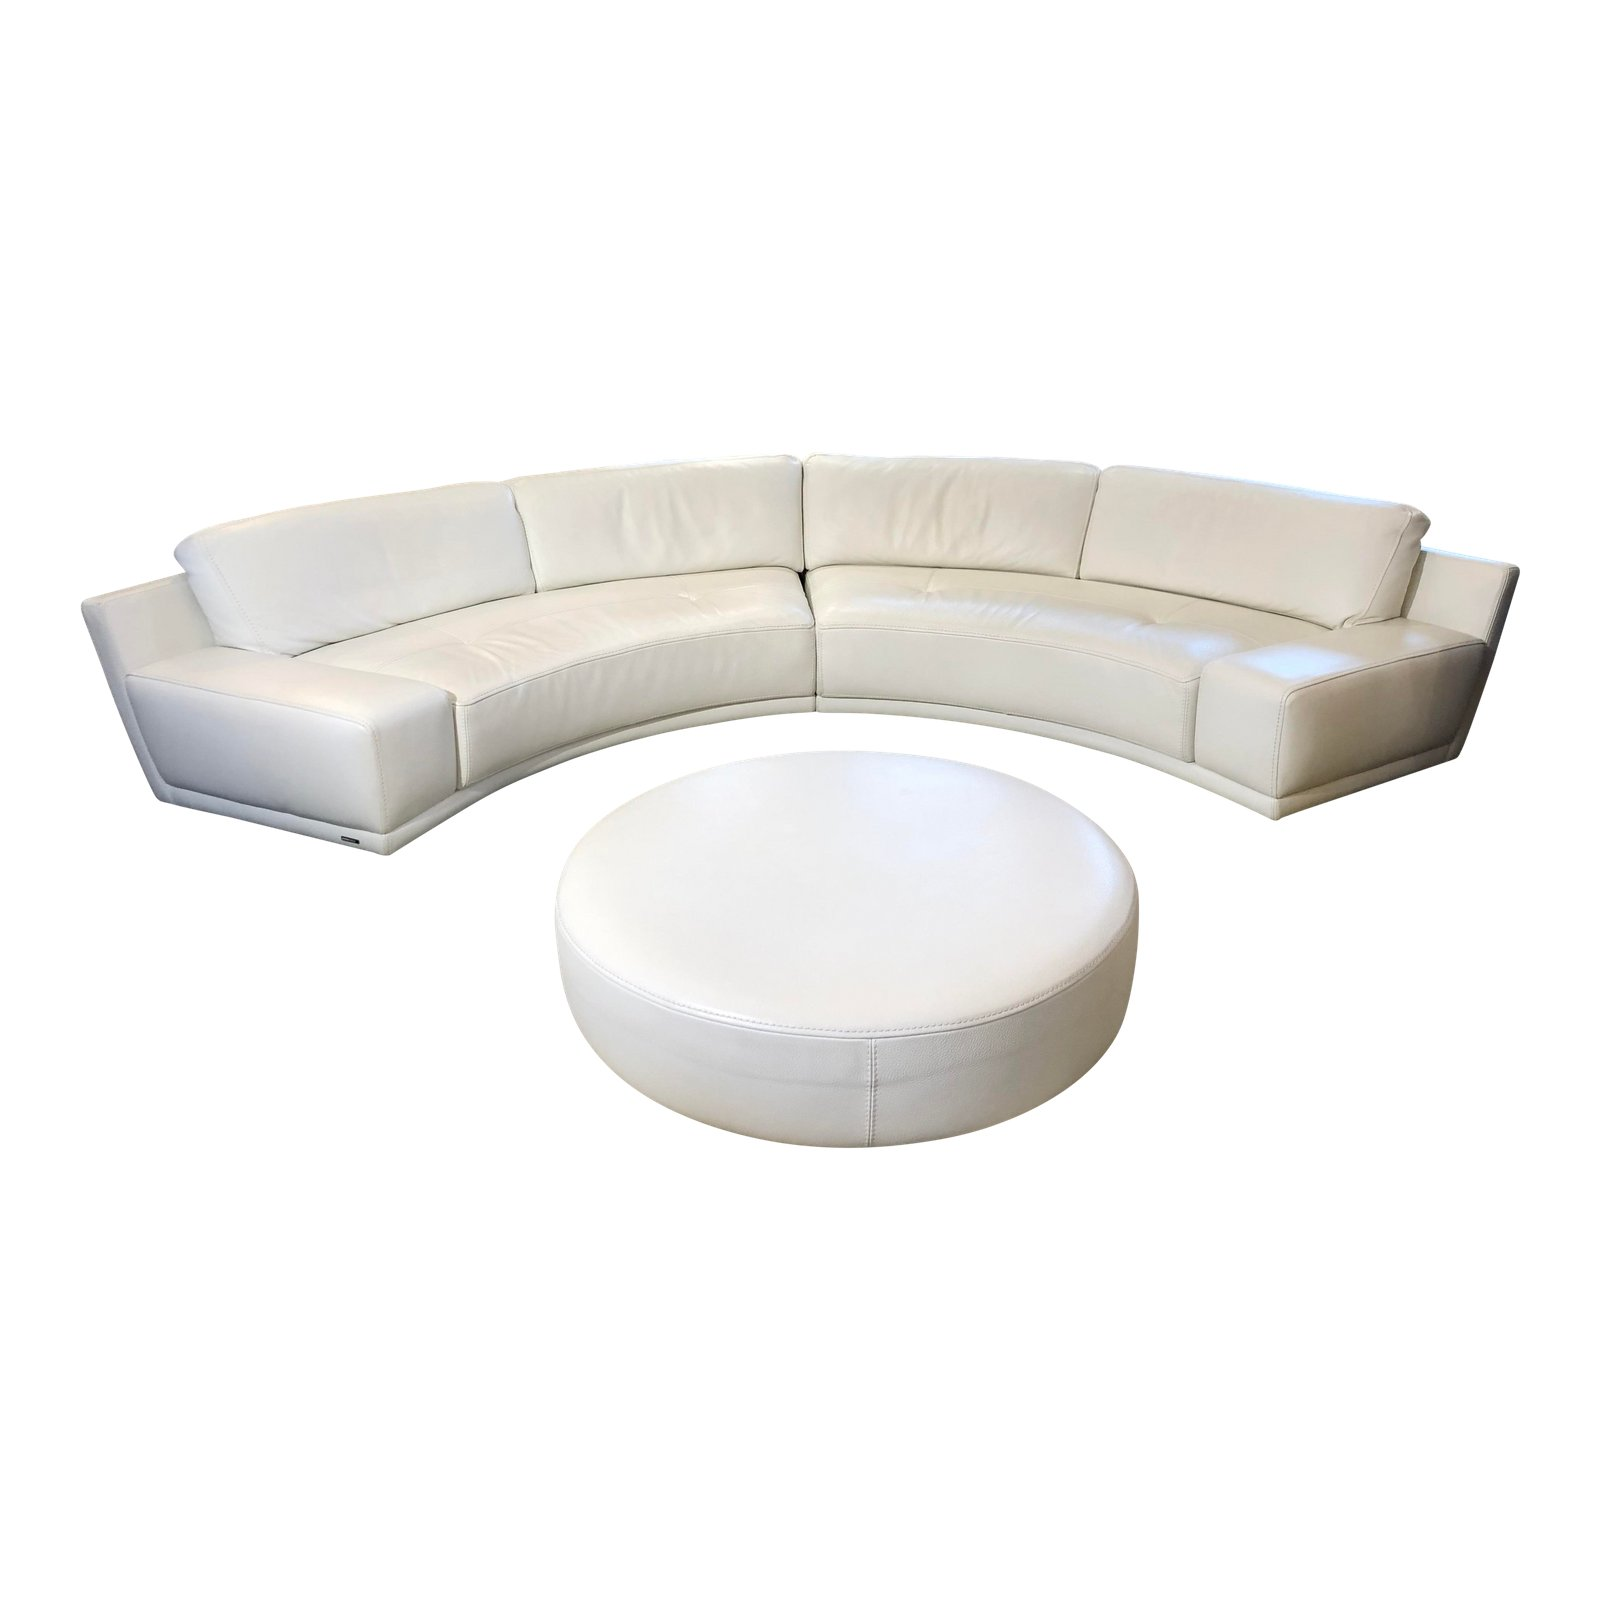 Admirable Solstice Curved Sectional Ottoman From Roche Bobois Ocoug Best Dining Table And Chair Ideas Images Ocougorg